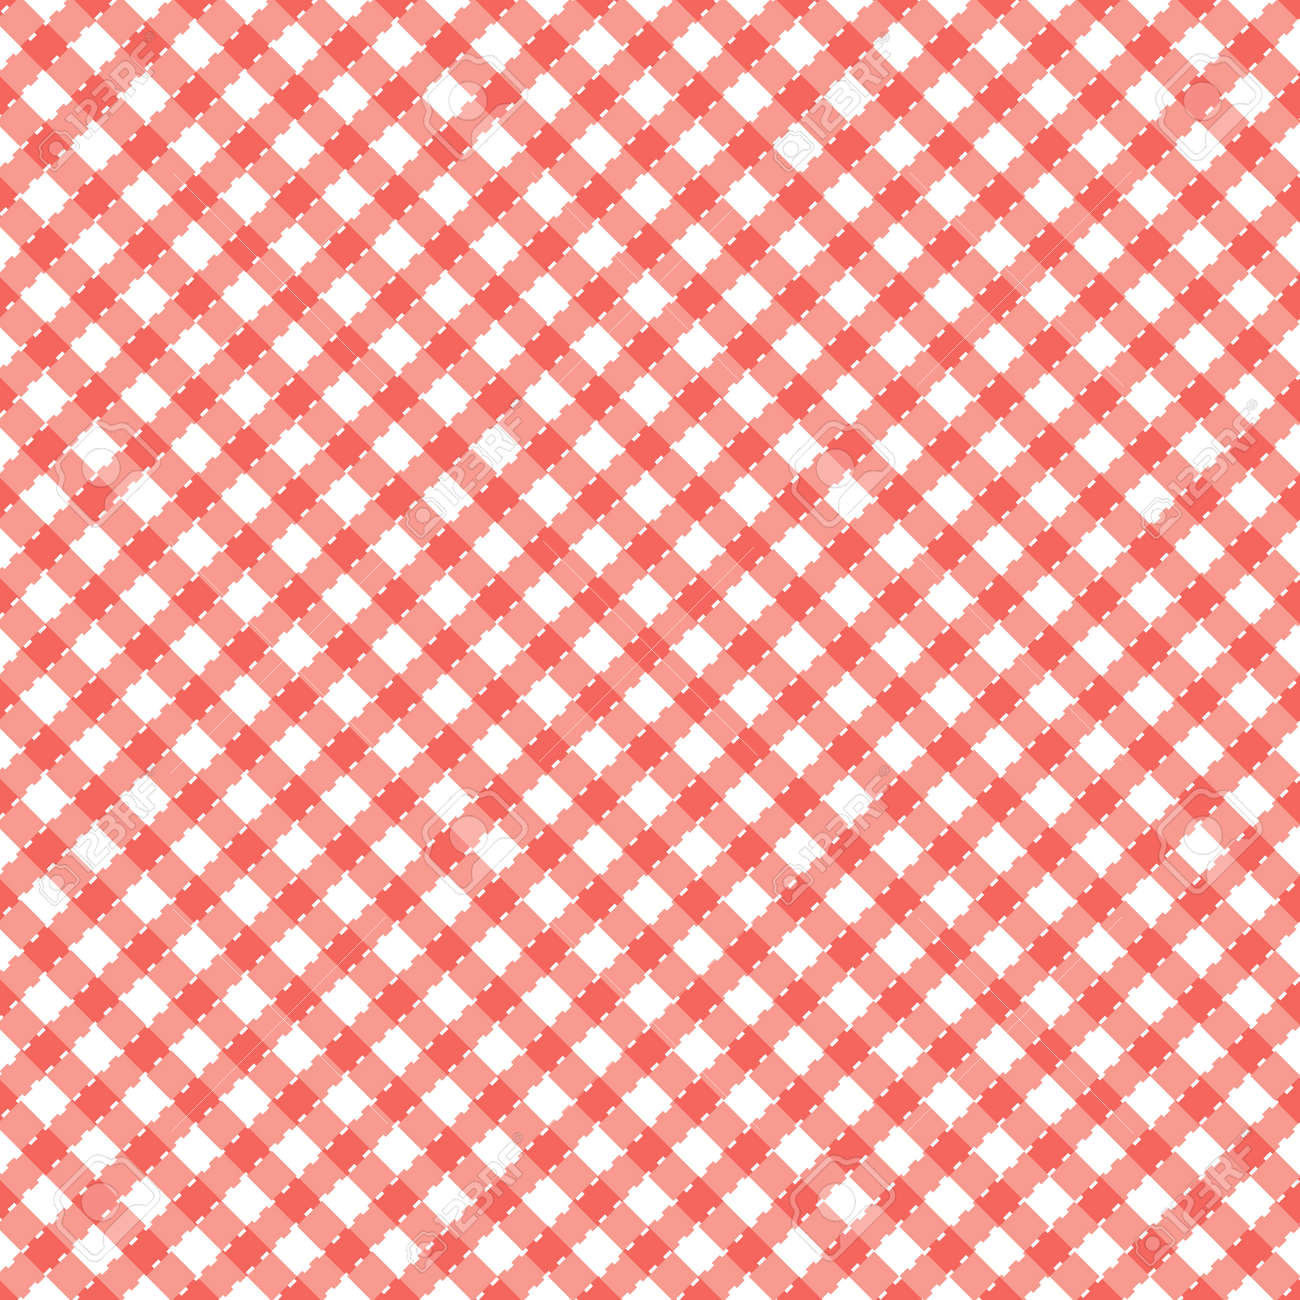 Red and white popular background pattern for picnics - 4231045